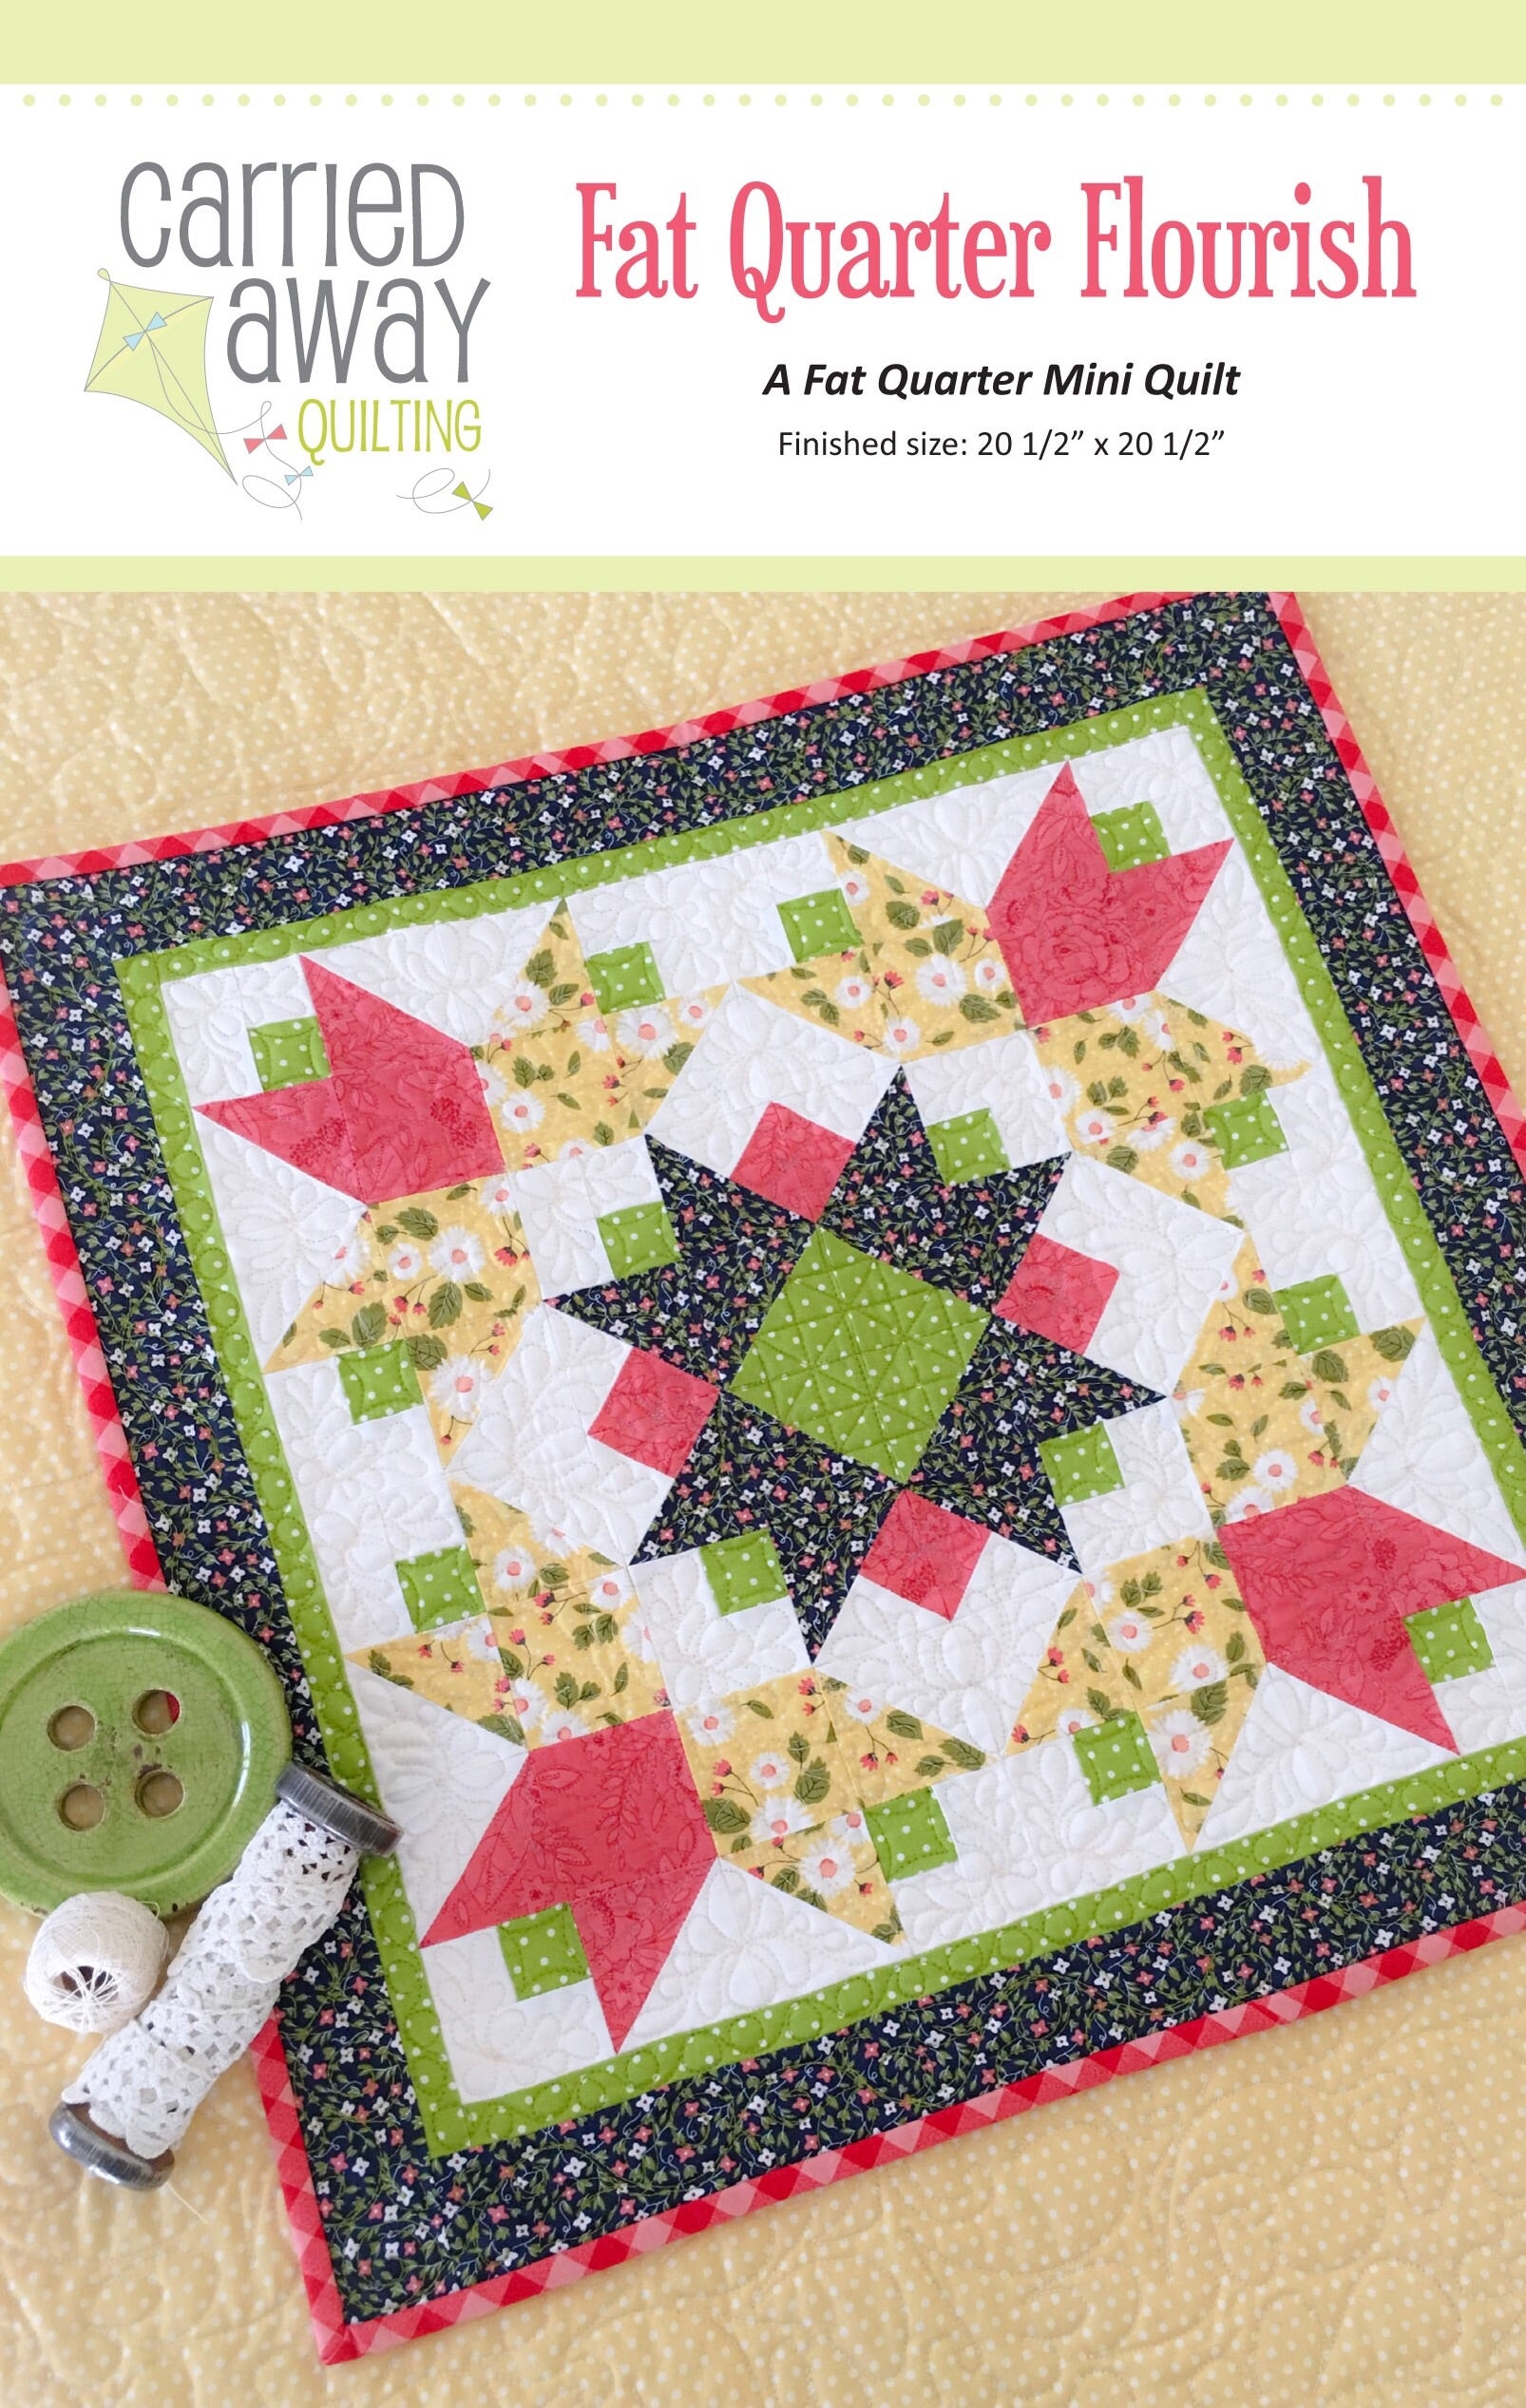 Fat Quarter Flourish Mini Quilt Pattern by Taunja Kelvington of Carried Away Quilting